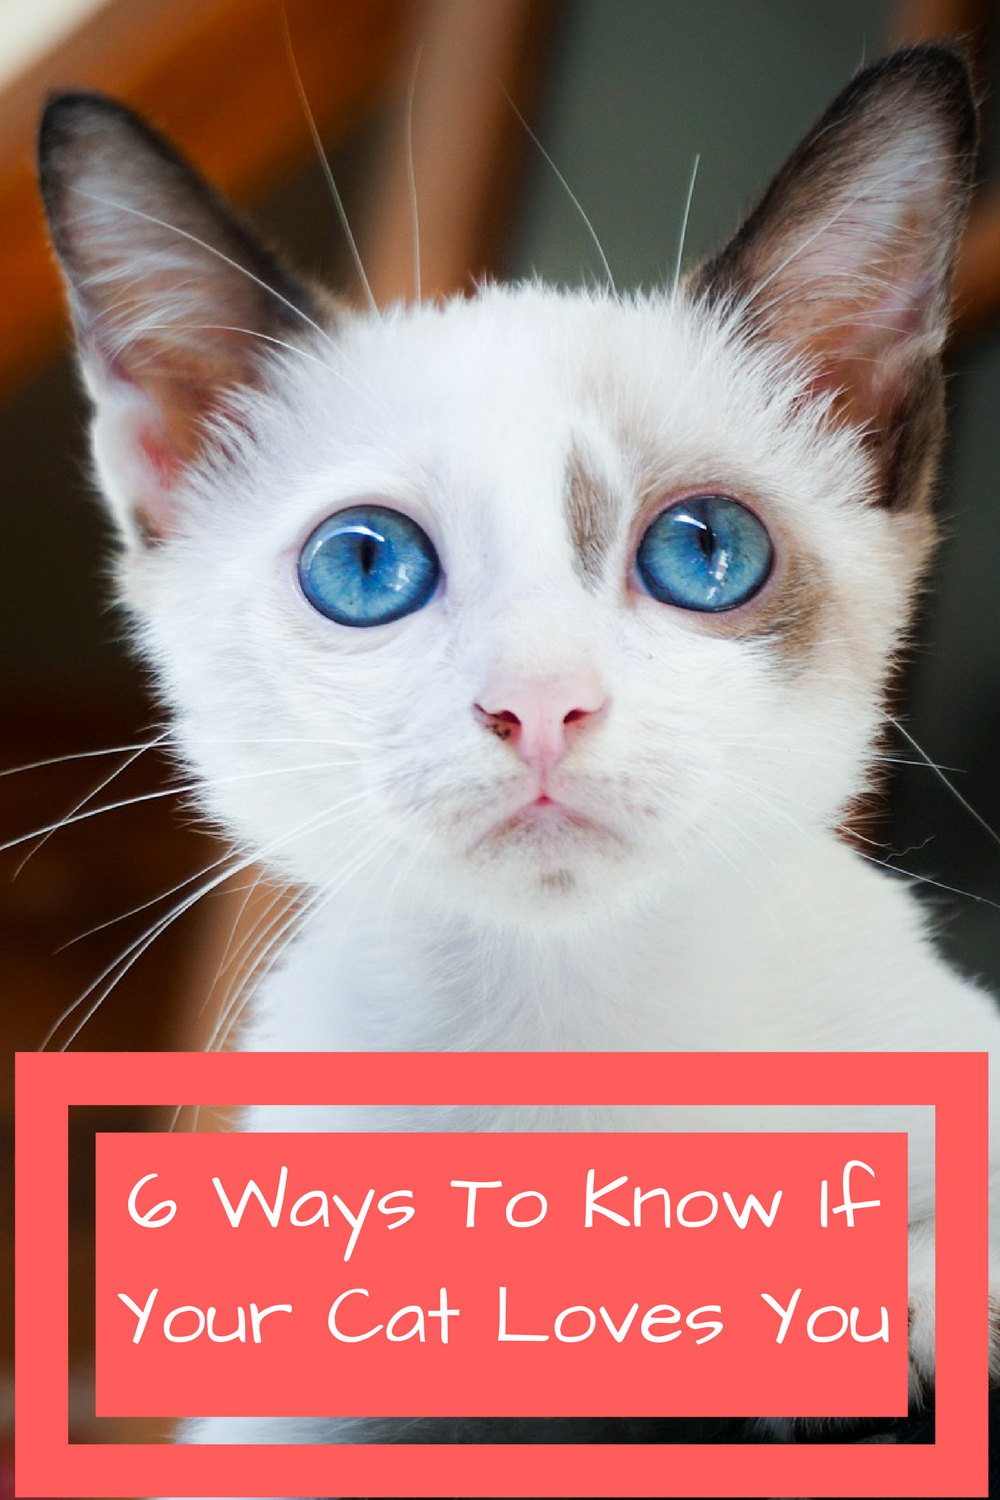 6 ways to know if your cat loves you  http://mobikitty.com/how-to-know-if-your-cat-loves-you/